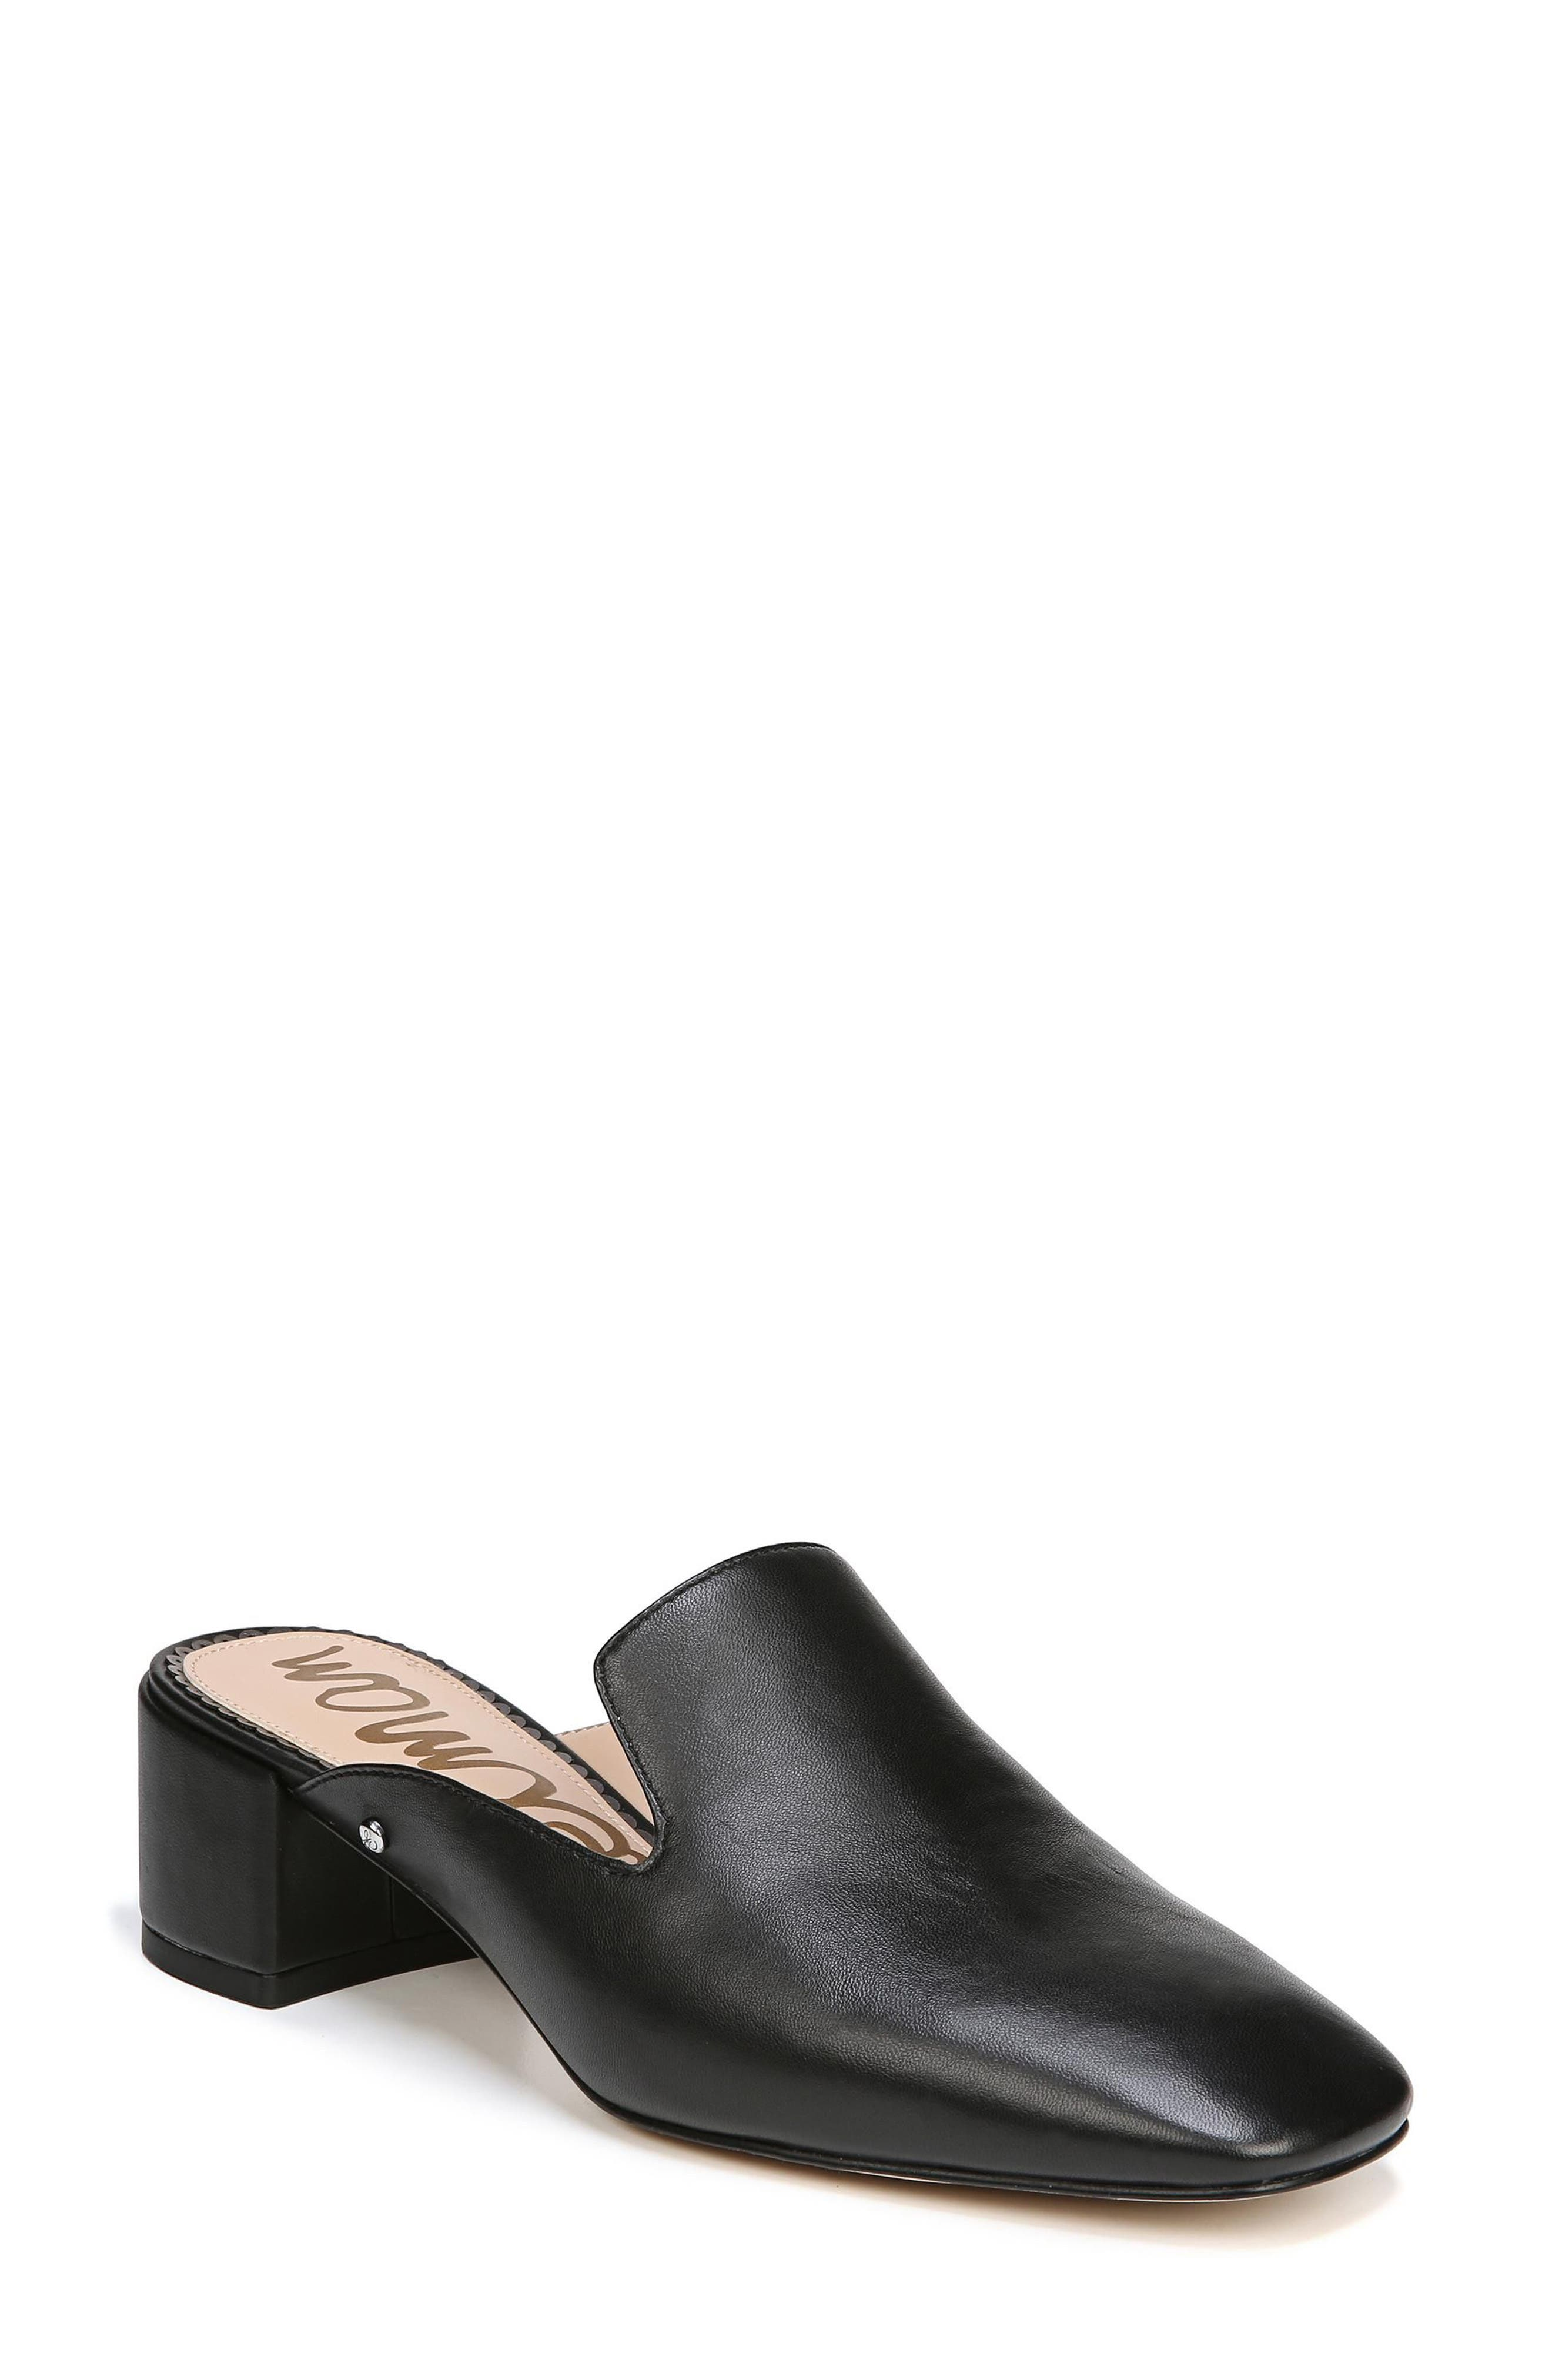 Adair Loafer Mule,                         Main,                         color, BLACK LEATHER